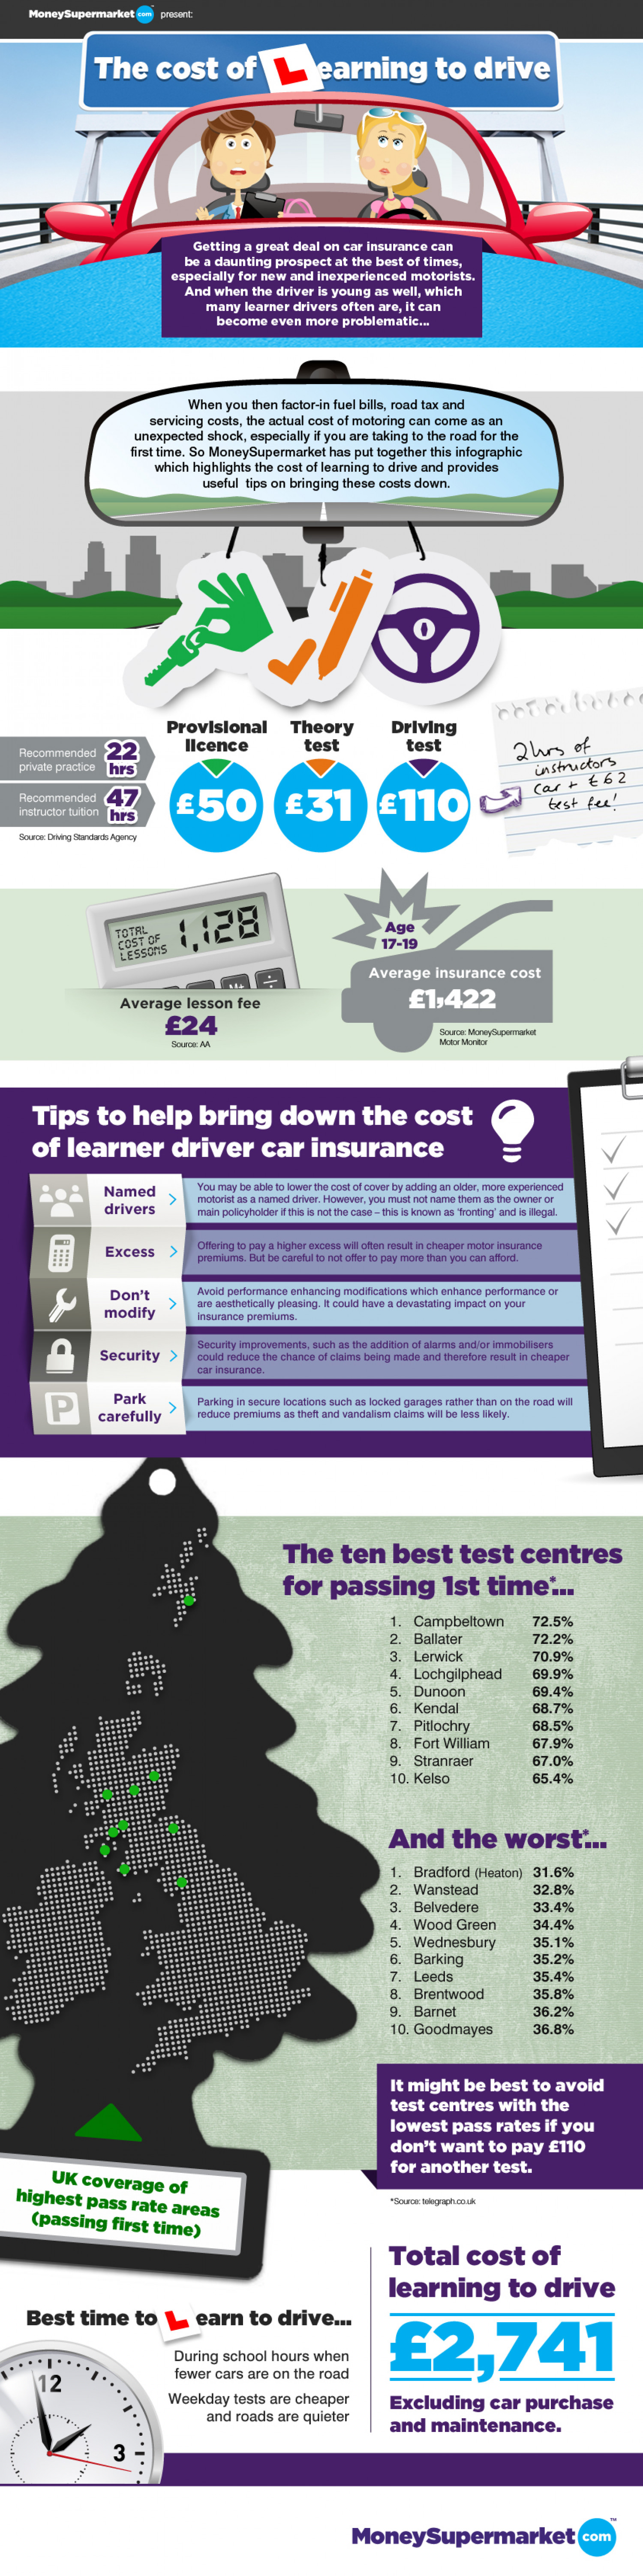 The Cost of Learning To Drive Infographic